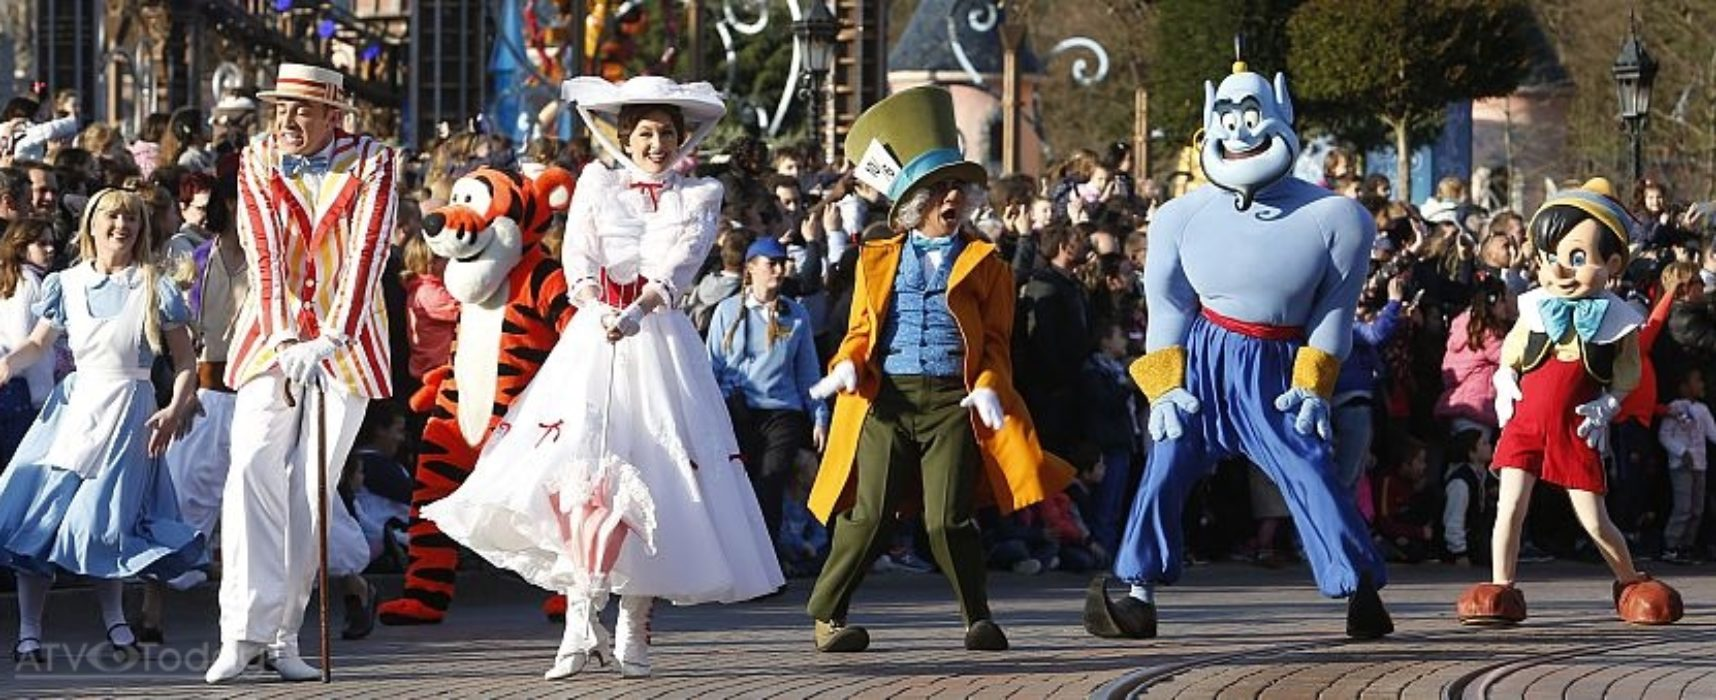 Video Special: 25th Anniversary of Disneyland Paris